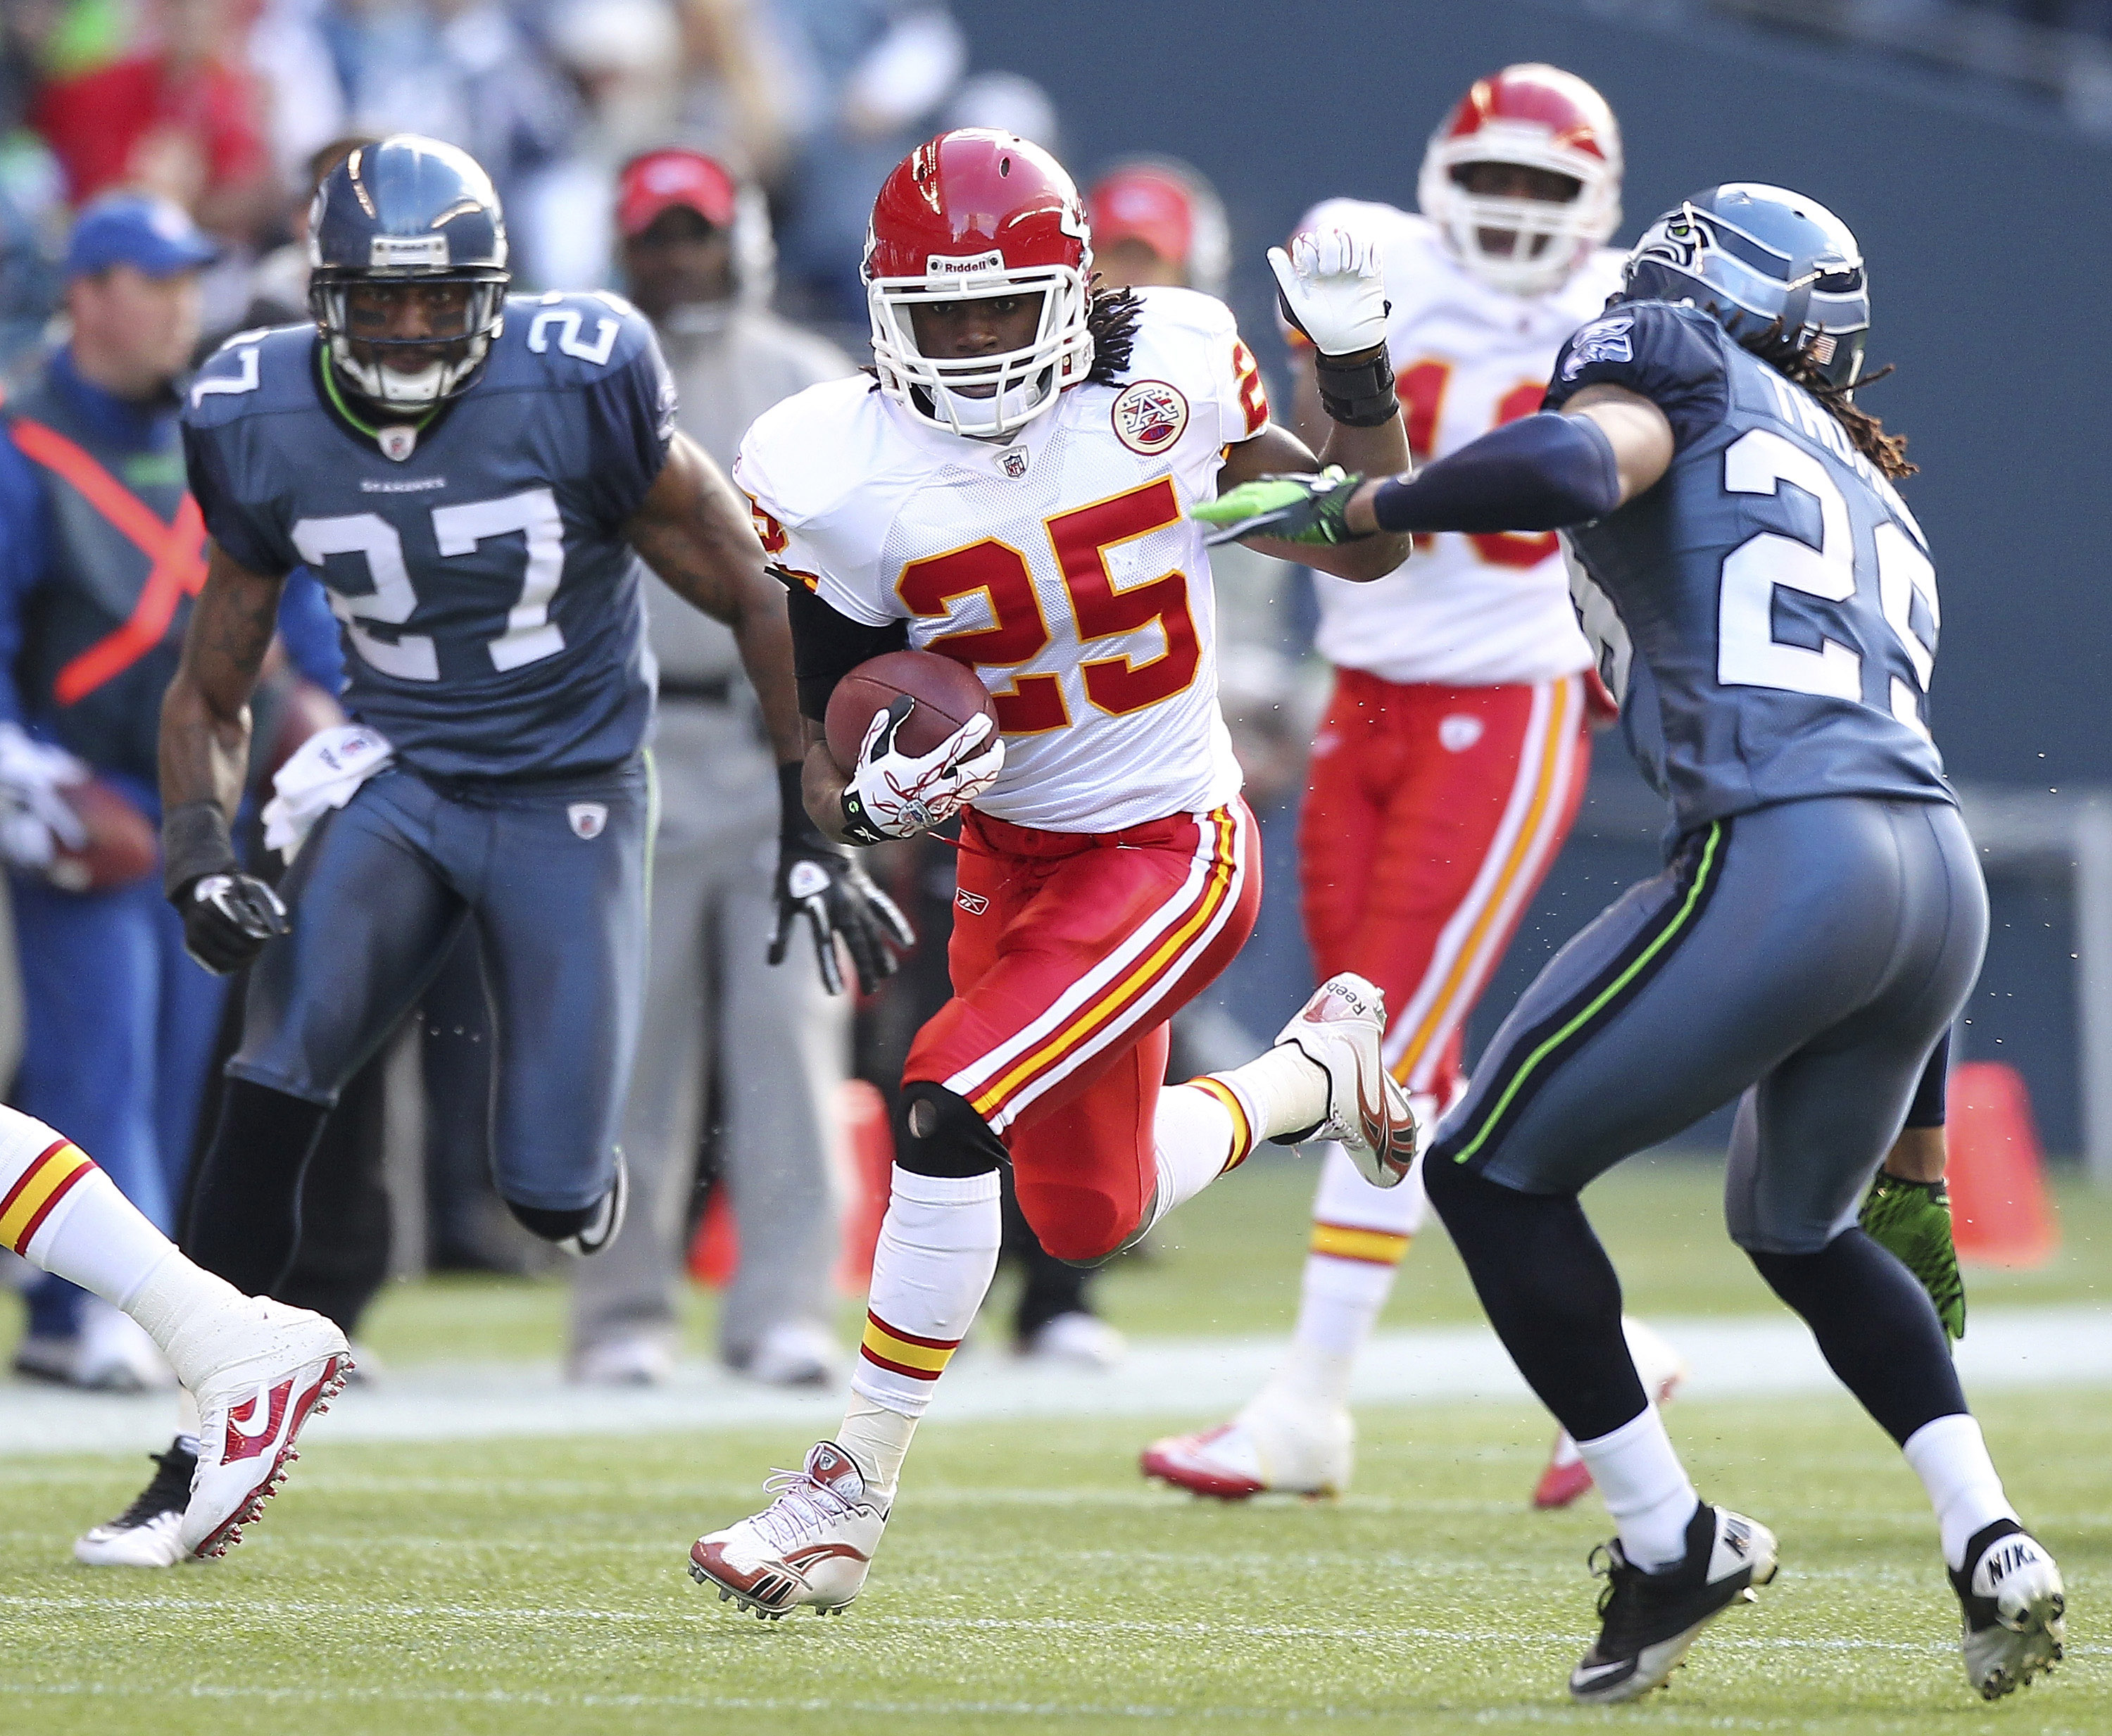 SEATTLE - NOVEMBER 28:  Running back Jamaal Charles #25 of the Kansas City Chiefs rushes against Earl Thomas #29 of the Seattle Seahawks at Qwest Field on November 28, 2010 in Seattle, Washington. The Chiefs defeated the Seahawks 42-24. (Photo by Otto Gre